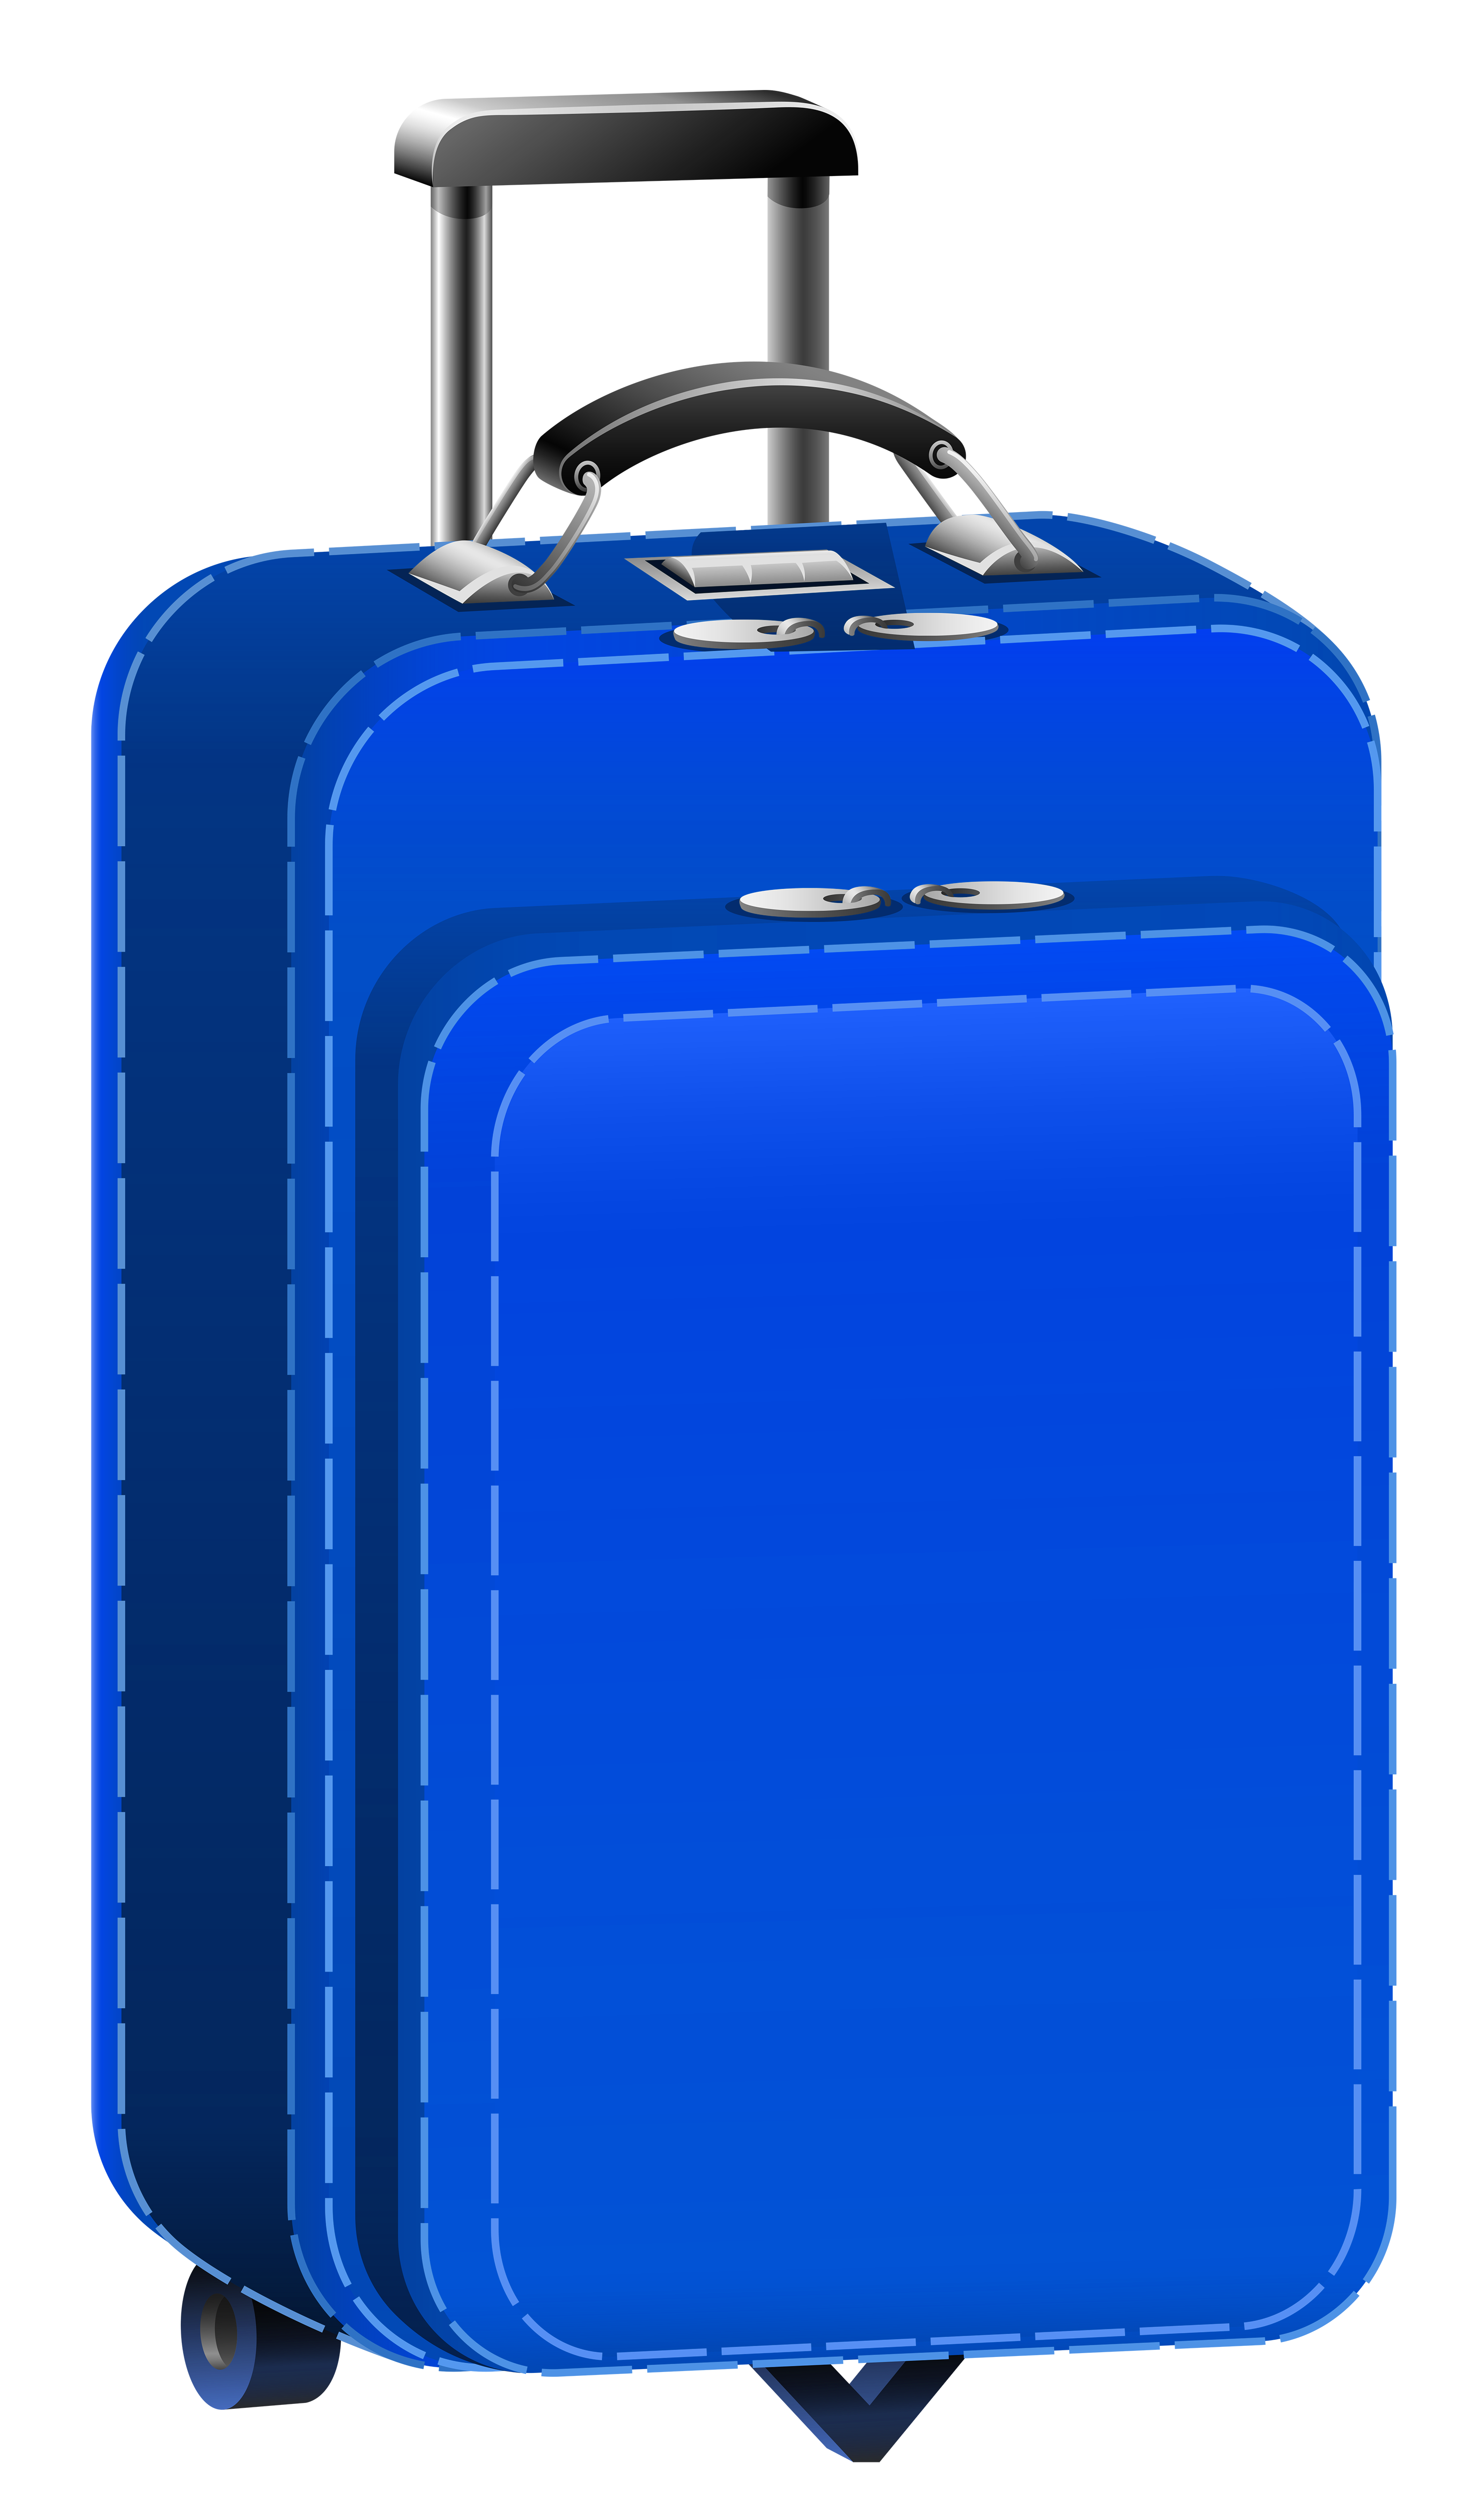 Travel clipart baggage Yopriceville View Clipart Travel Bag